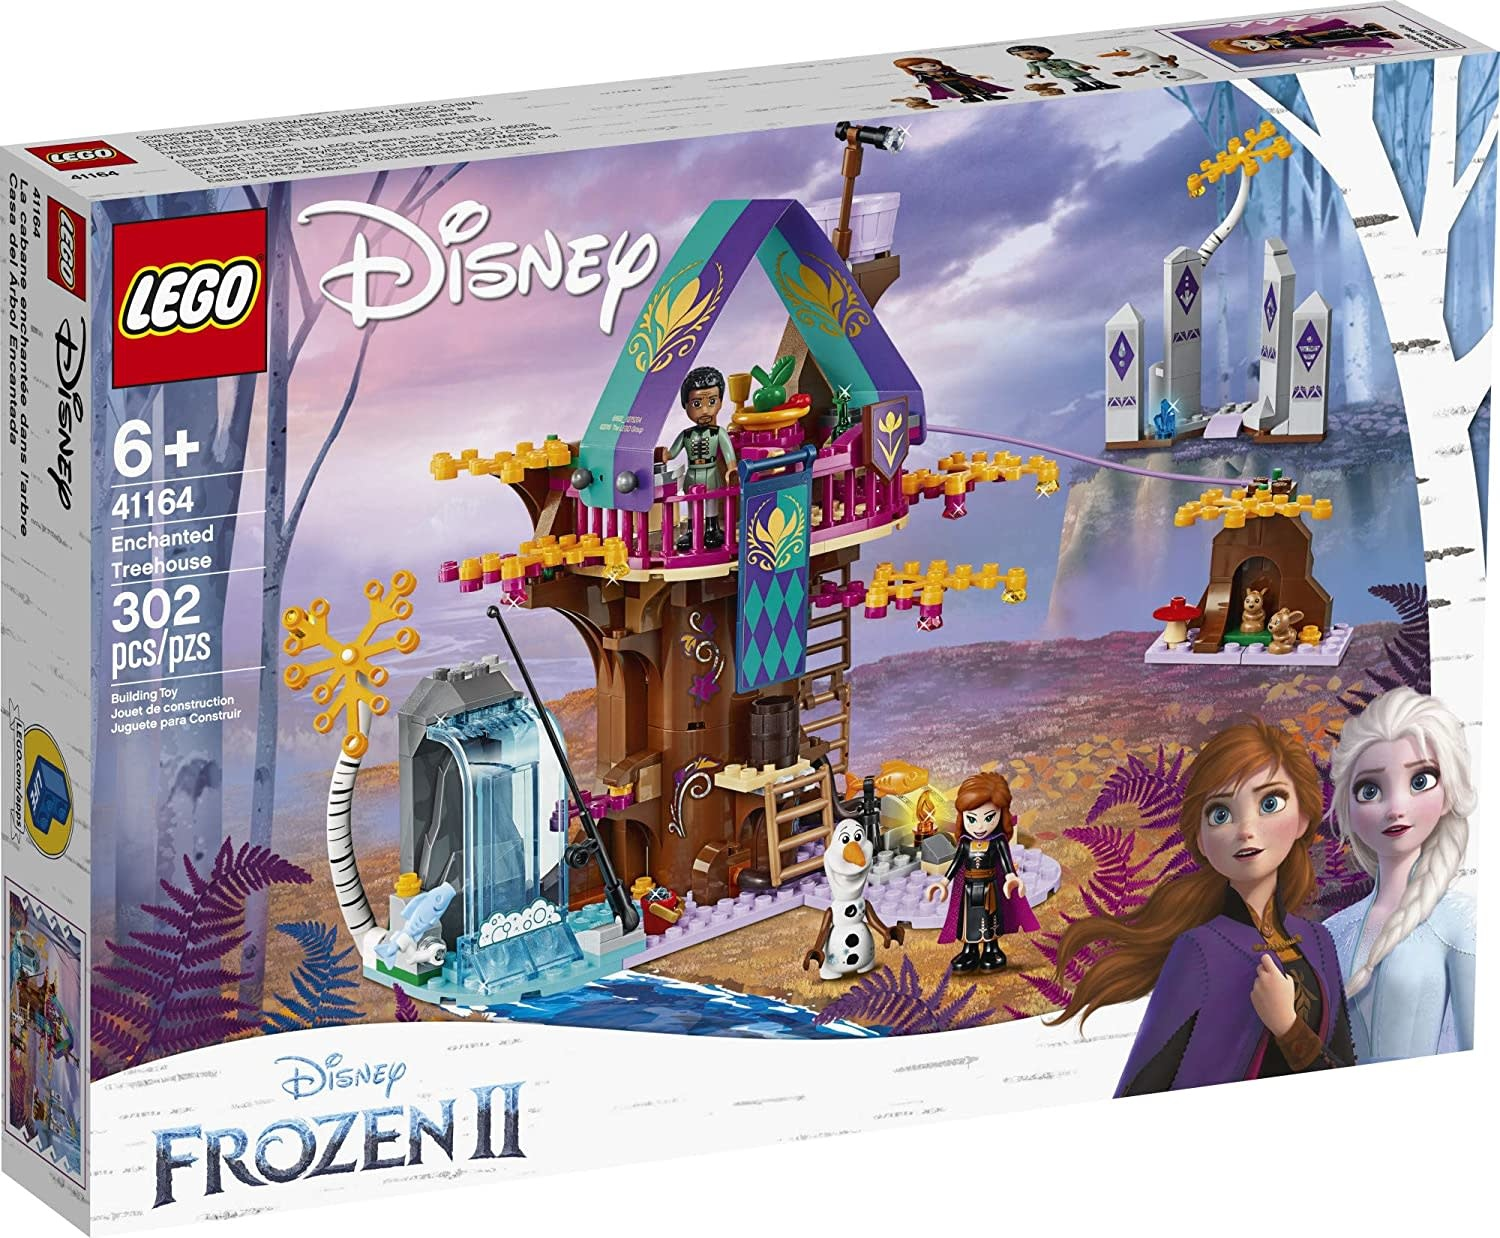 Lego Disney Frozen II Enchanted Treehouse-1